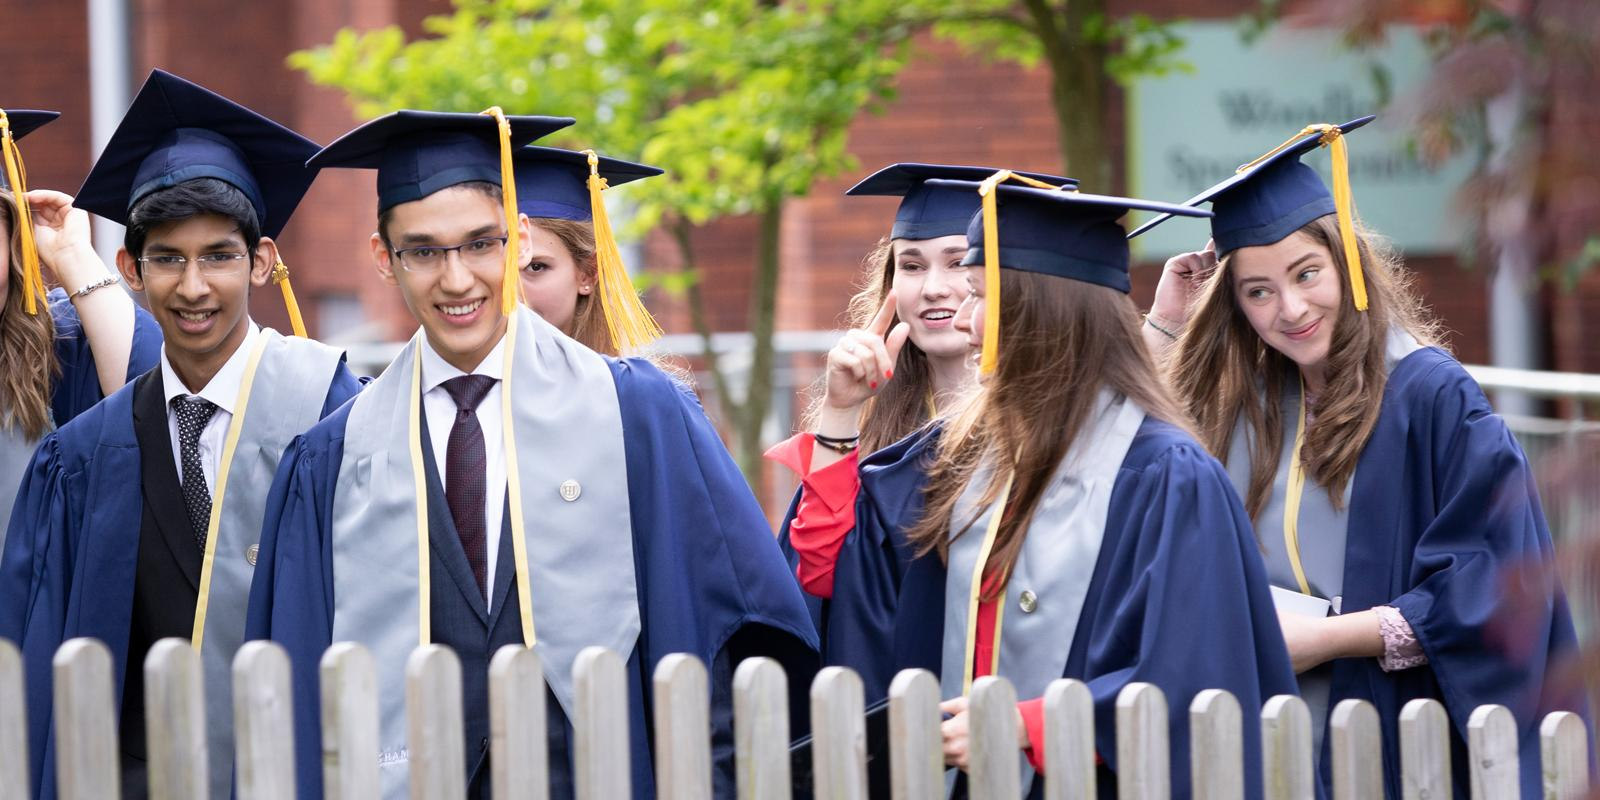 Egham 2018 graduates walking through the campus